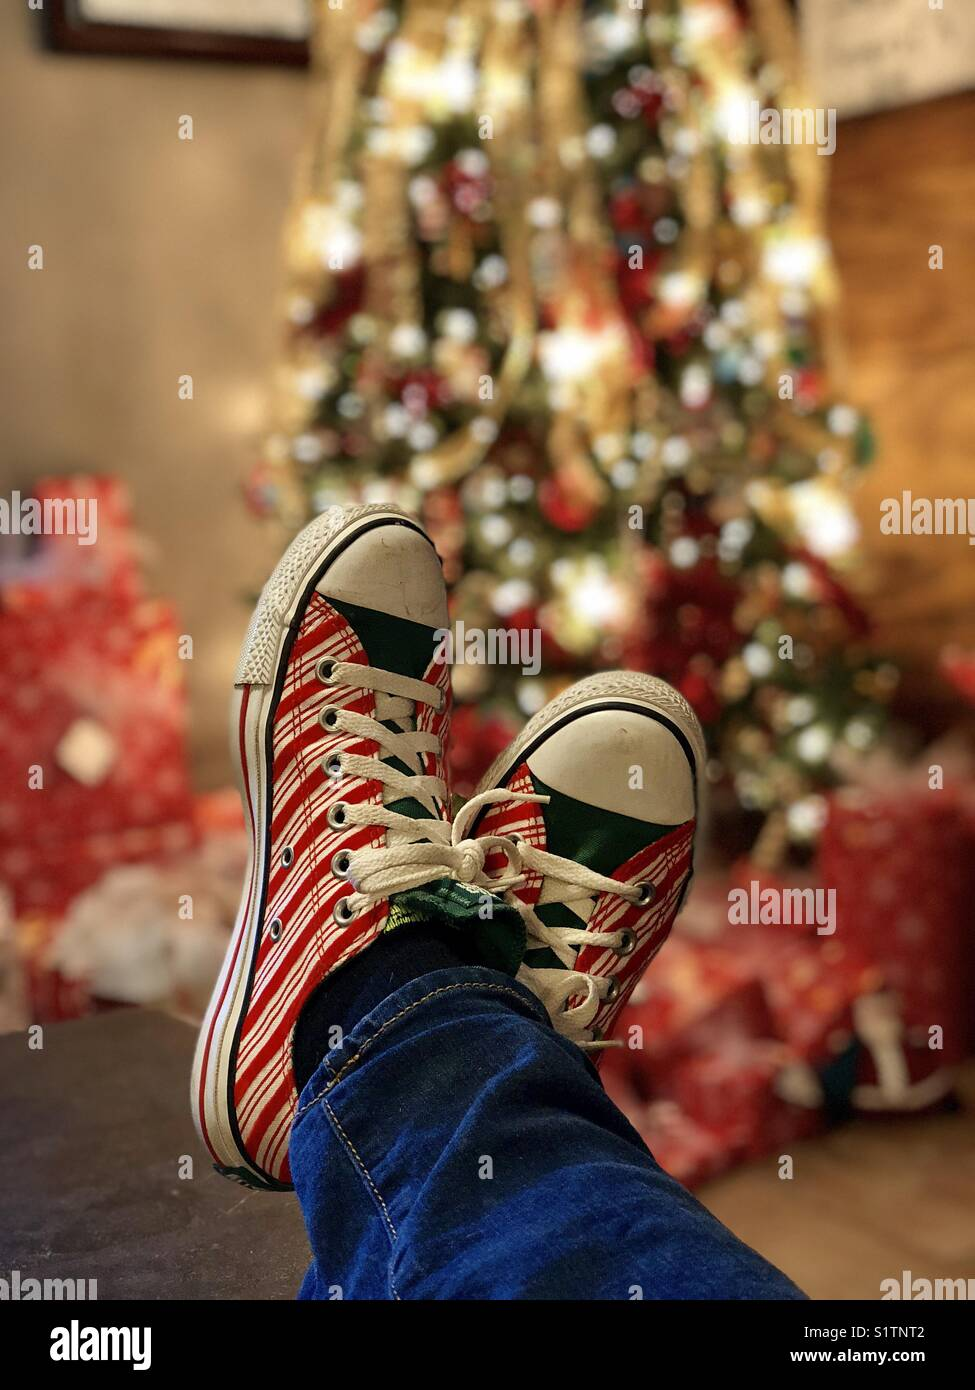 Ugly Shoes Stock Photos Ugly Shoes Stock Images